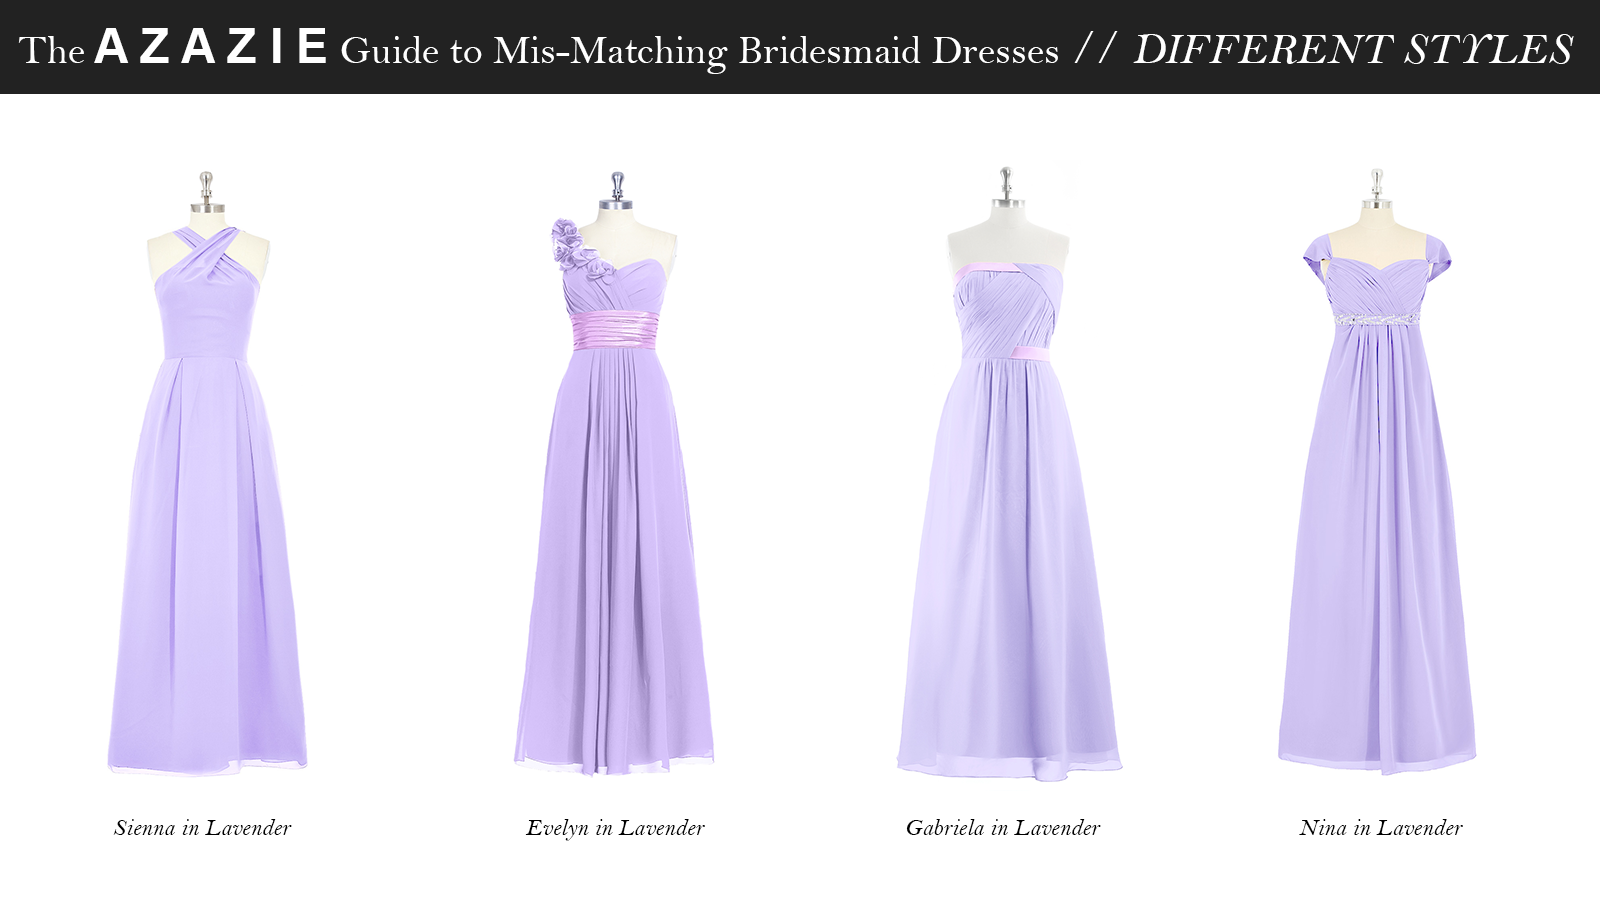 AZAZIE_Guide_MisMatching_Bridesmaid_Dresses_Different_Styles